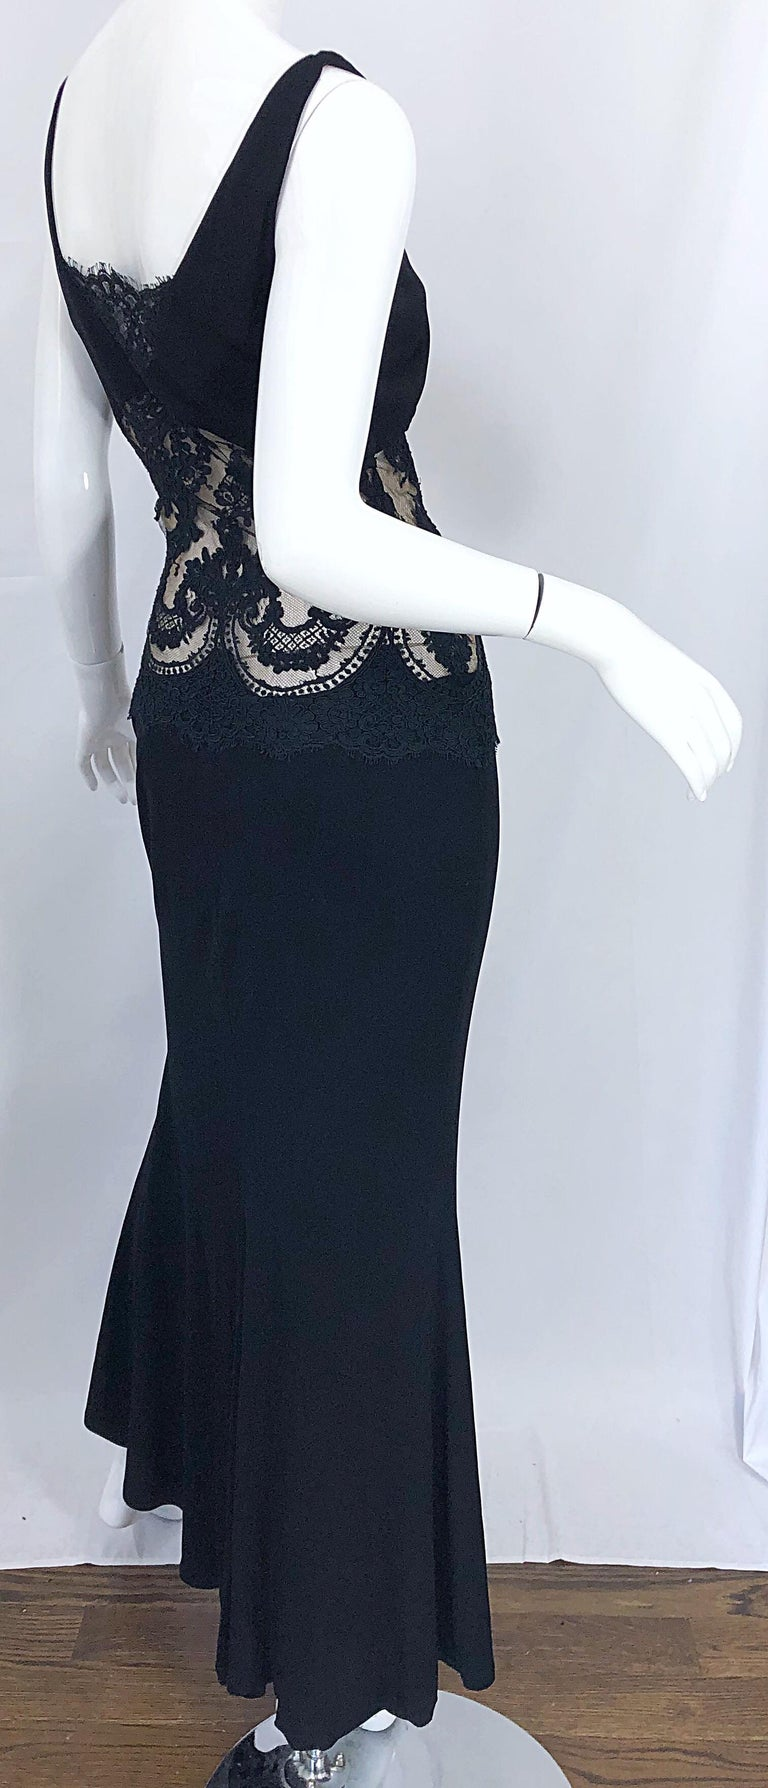 1990s Randolph Duke Black Sexy Lace Cut-Out Sleeveless Vintage 90s Evening Gown For Sale 3